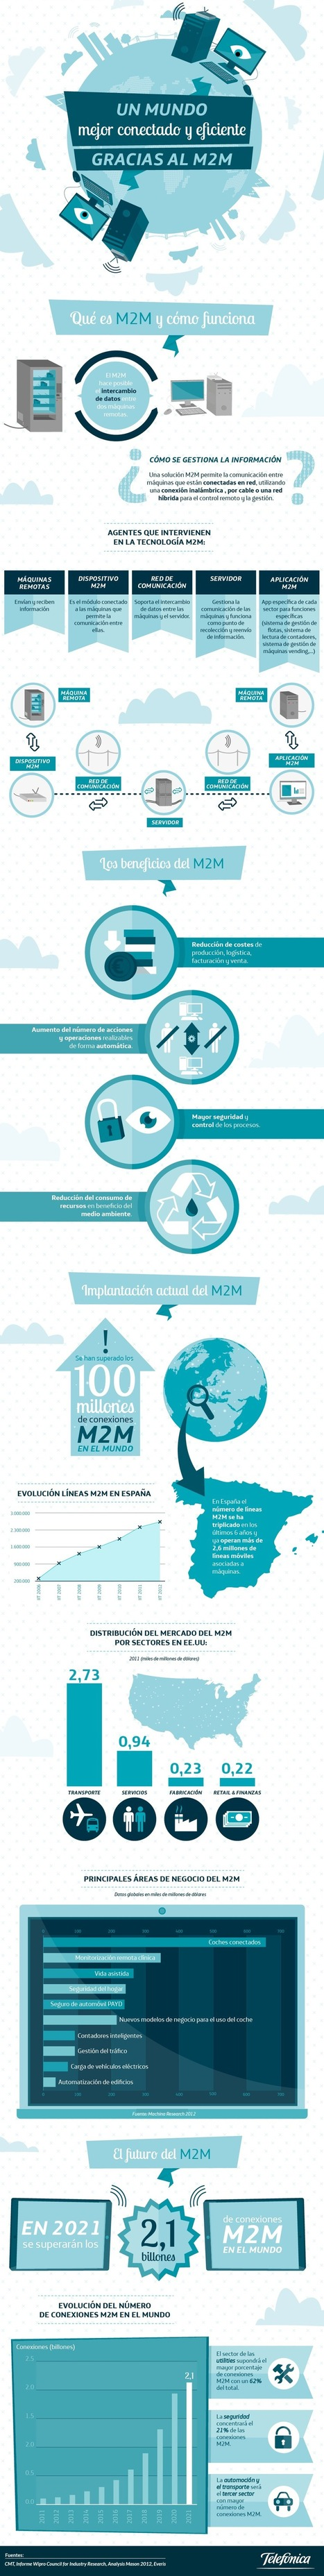 Todo lo que debéis saber sobre el M2M #infografia | Managing Technology and Talent for Learning & Innovation | Scoop.it